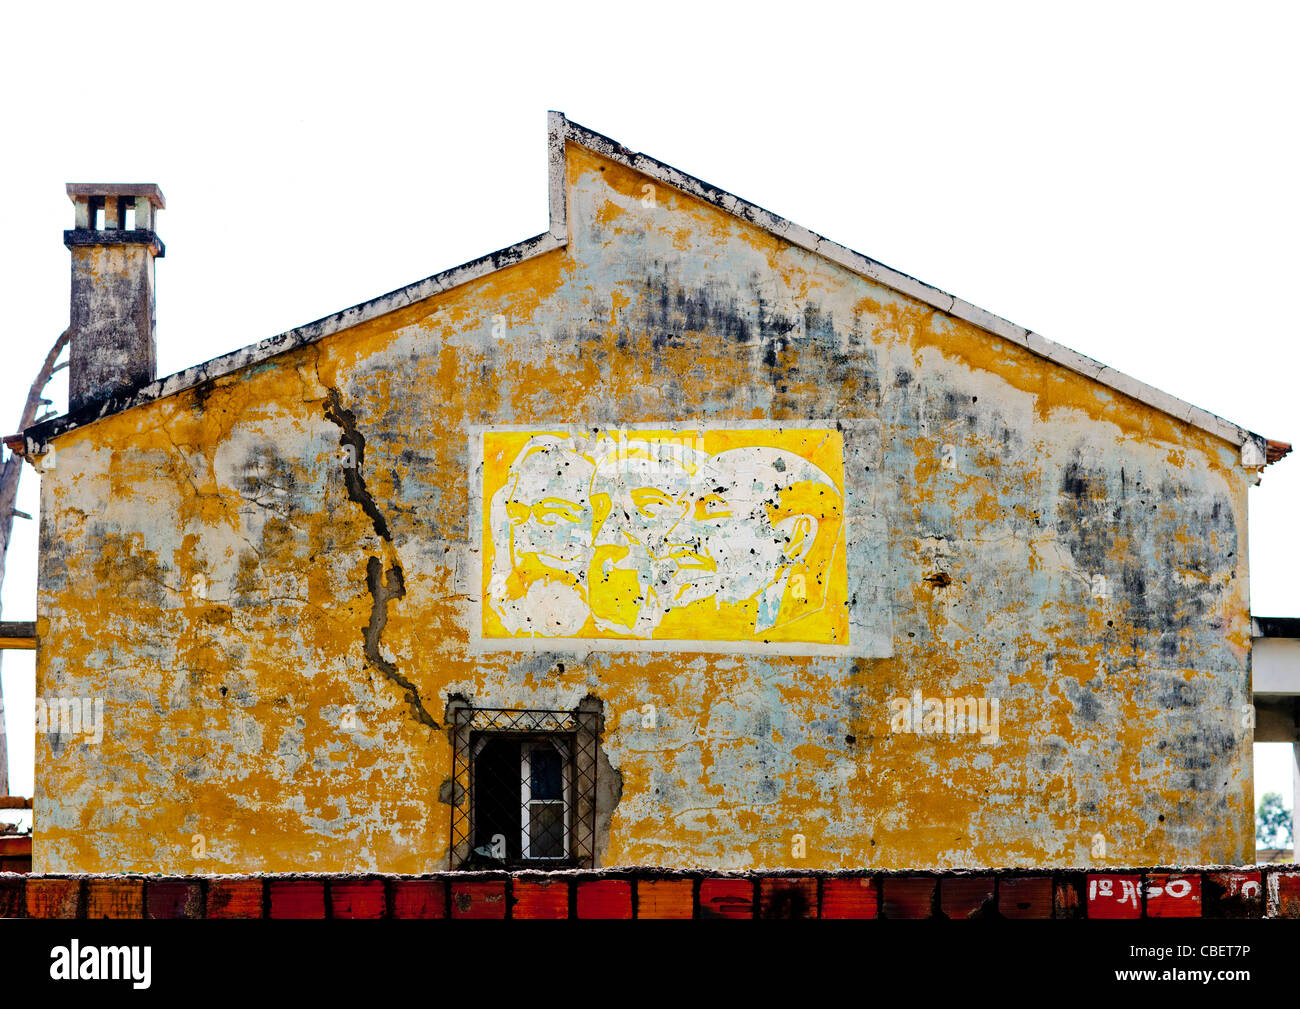 Old Communist Propaganda On The Facade Of A House In Lubango, Angola - Stock Image